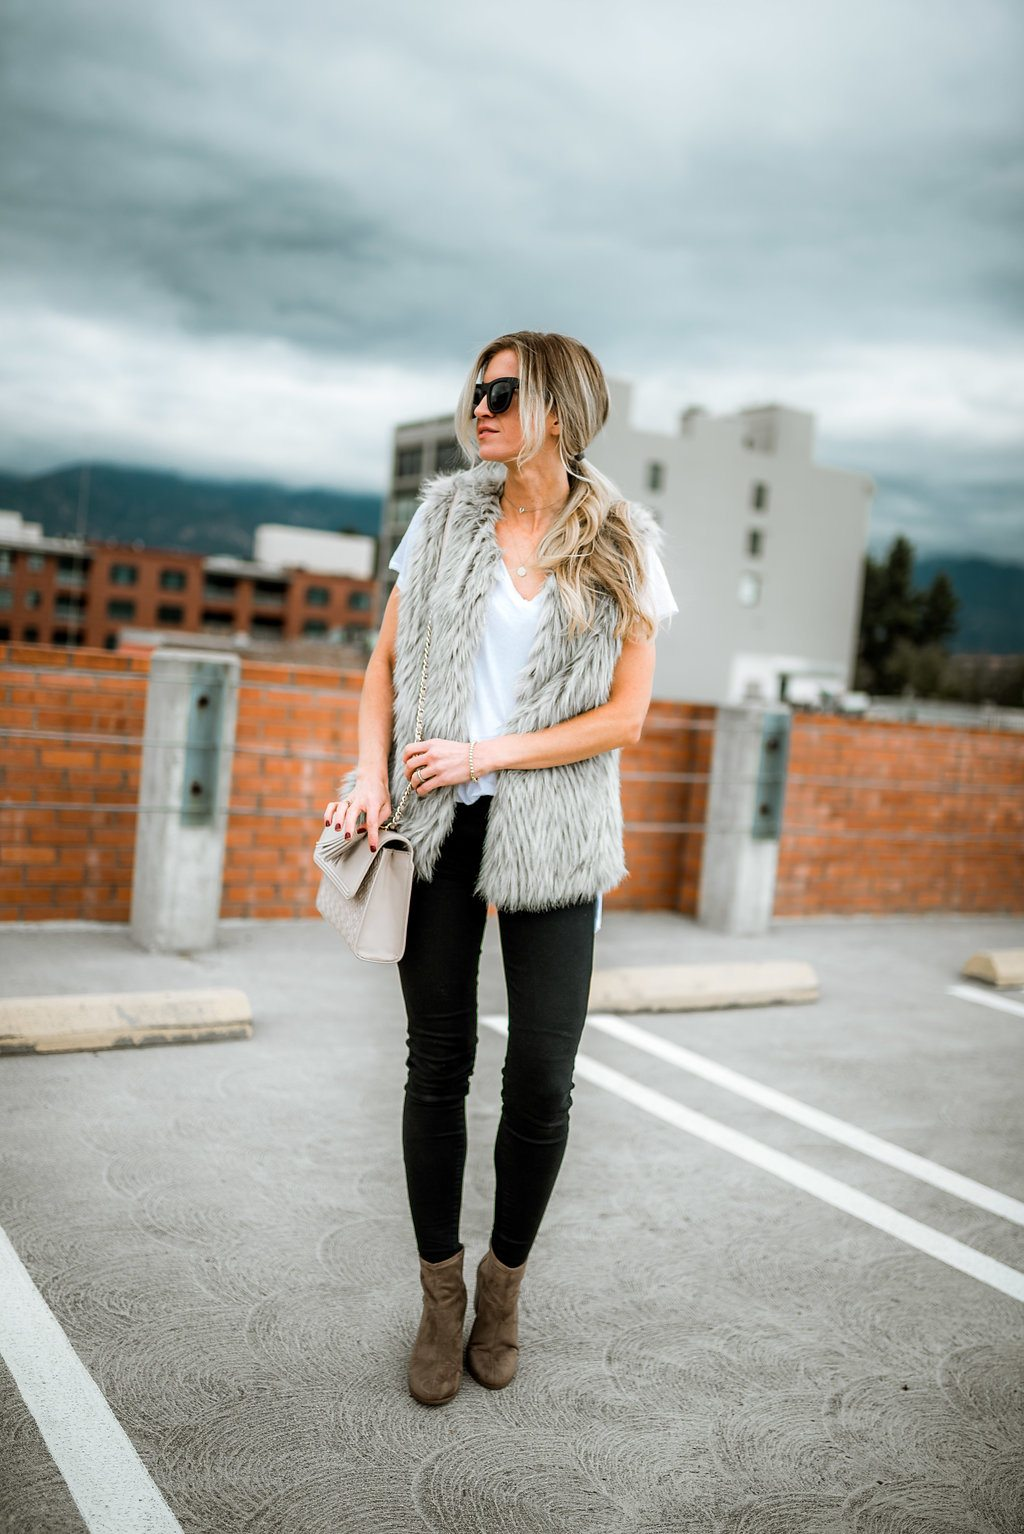 5 FUR VESTS I'M LOVING + A LIFE UPDATE!